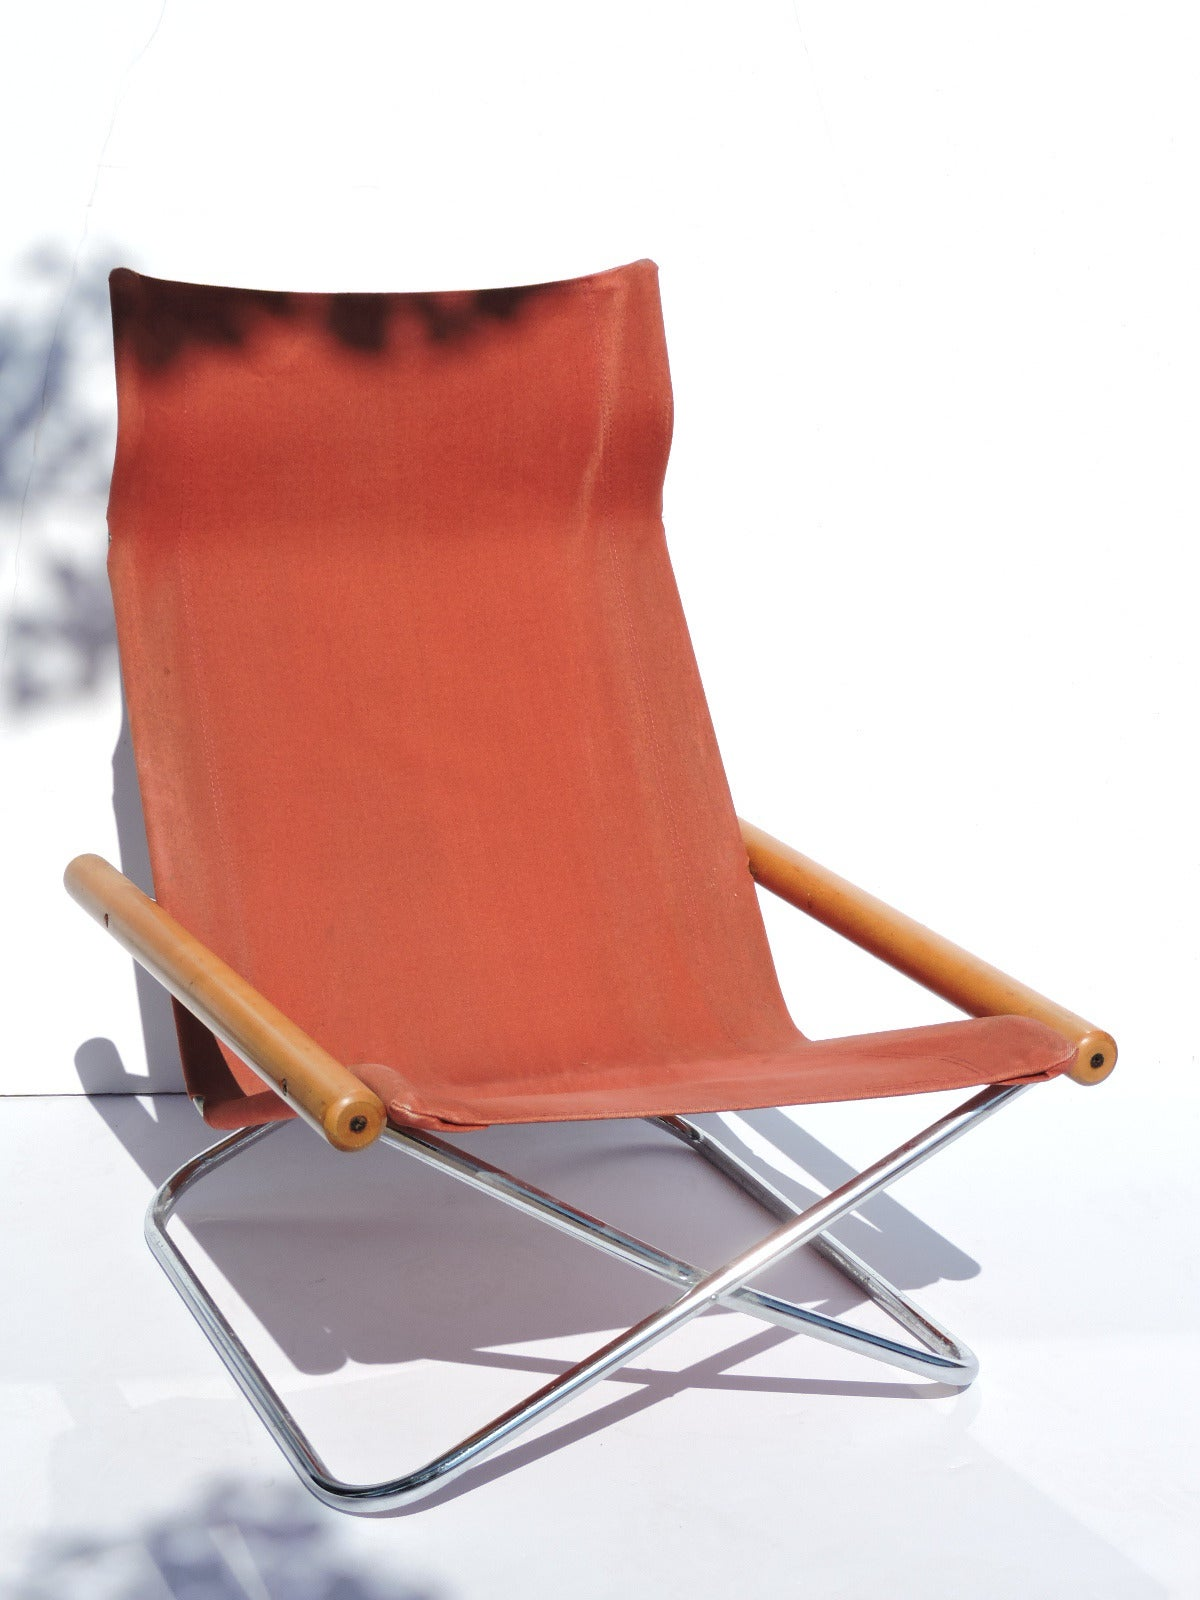 folding japanese chair bedroom hanging ny by takeshi nii japan 1958 at 1stdibs